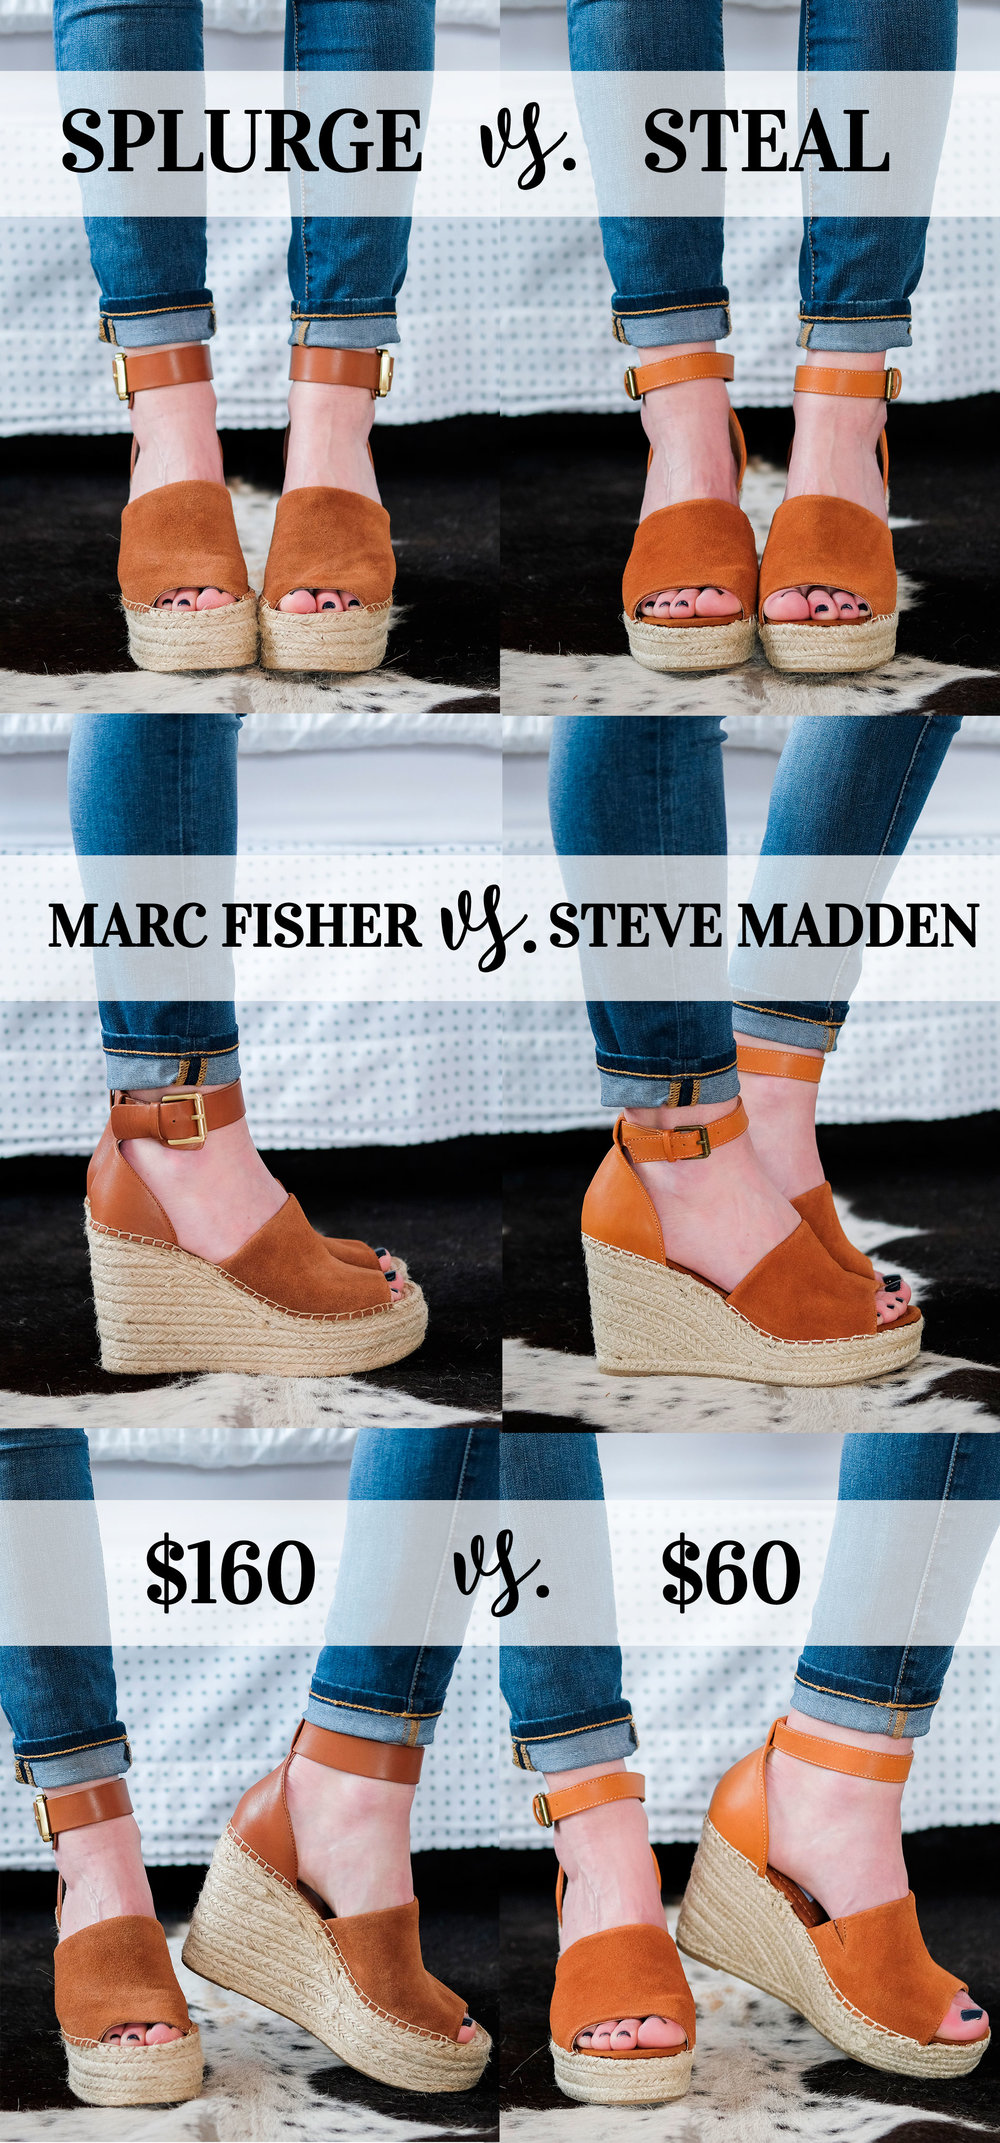 d6bfdfacb359 MARC FISHER  ADALYN  DUPES BY STEVE MADDEN FOR  60! — Me and Mr. Jones